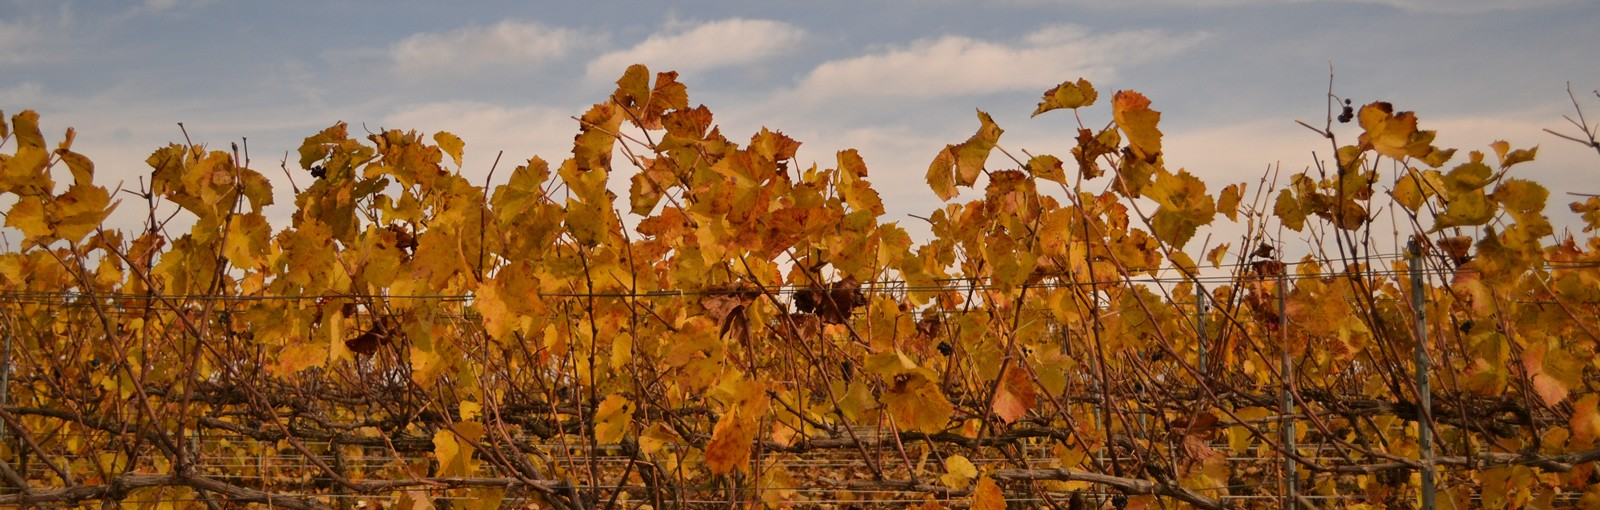 Tours Champagne - Burgundy - Berry - Multi-regional - Multiday tours from Paris